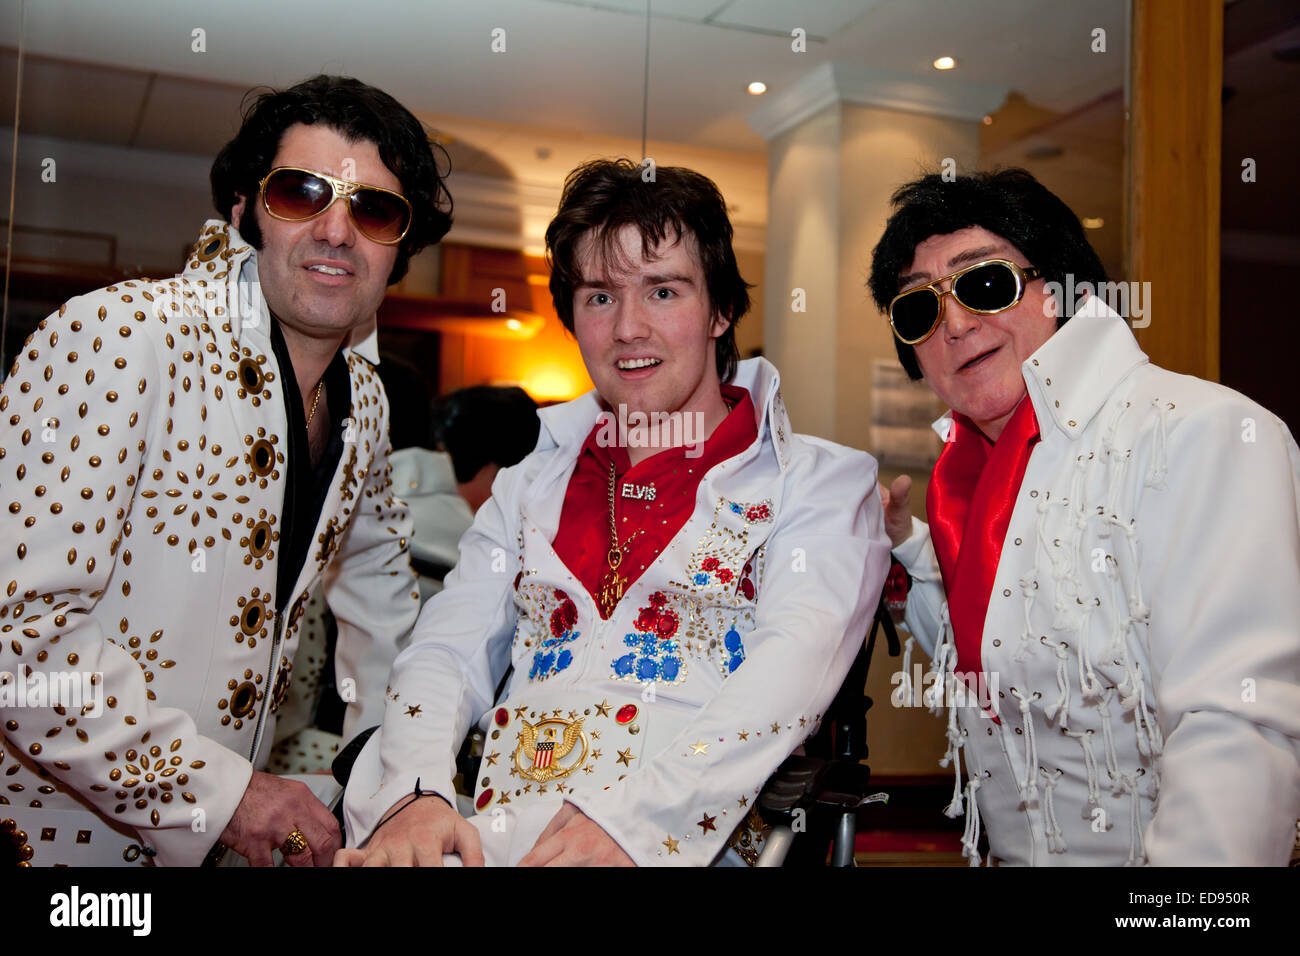 Elvis Presley tribute or impersonation act. 2015 Stock Photo